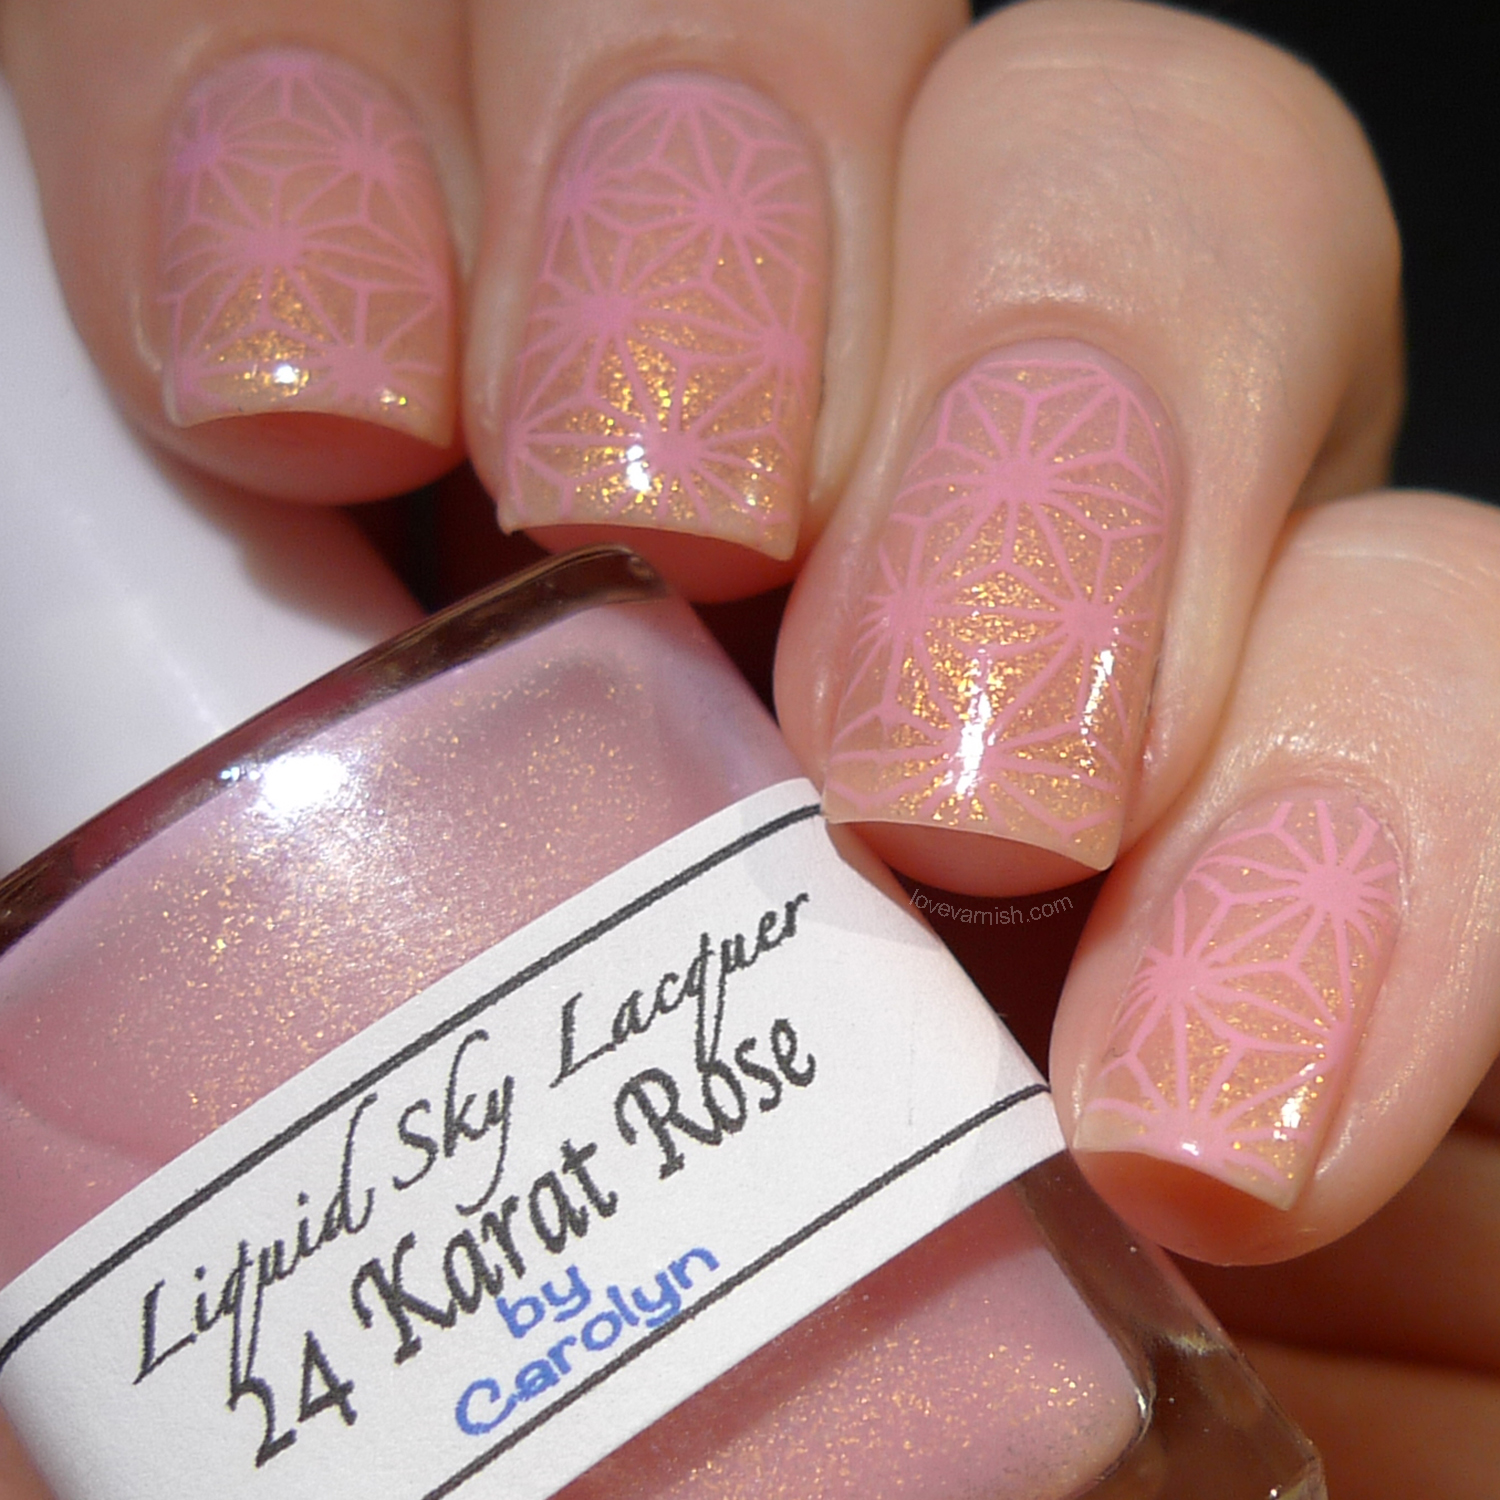 Liquid Sky Lacquer 24 Karat Rose thermal